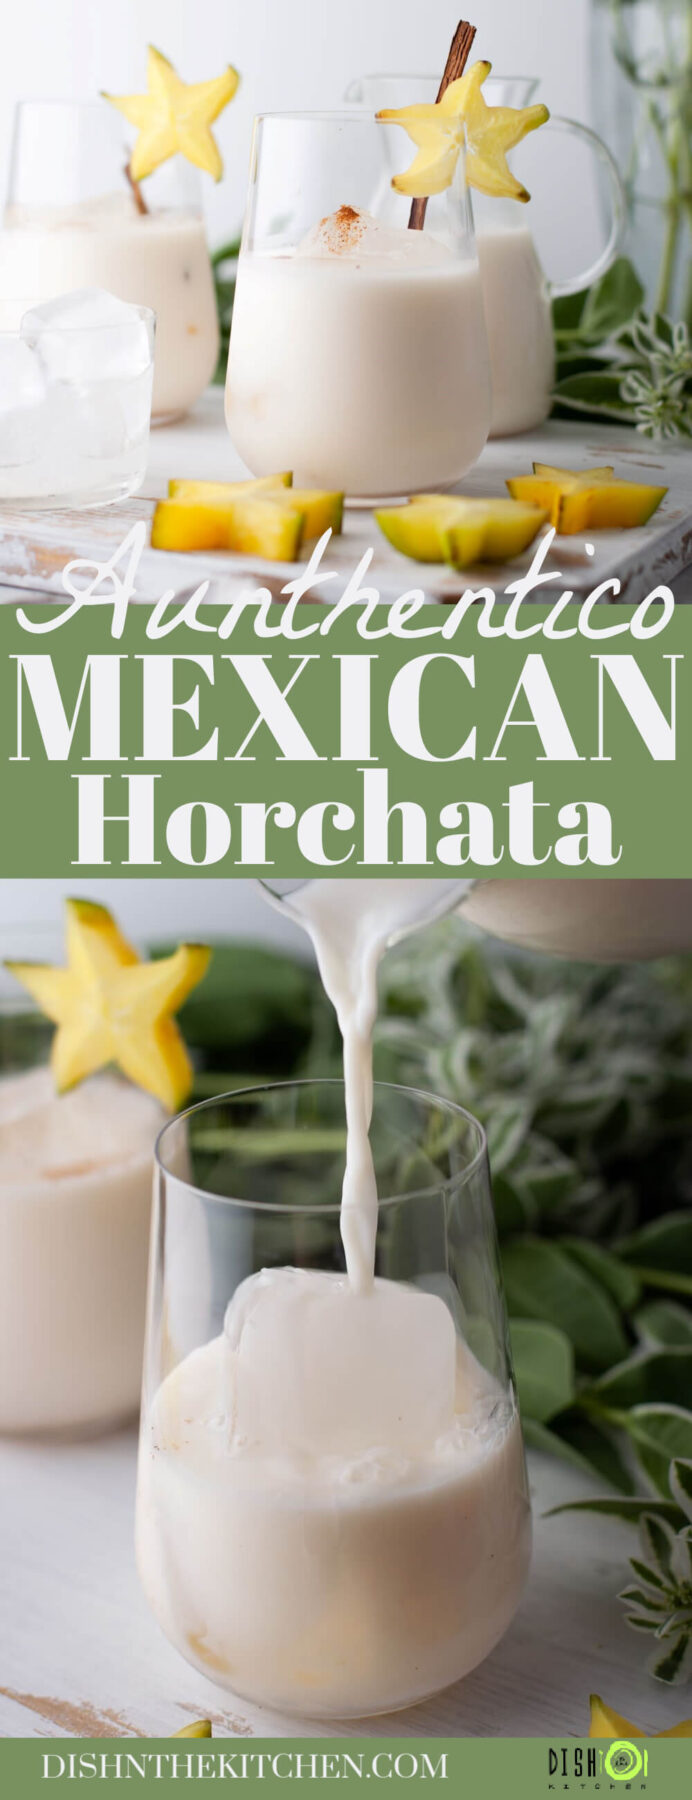 Pinterest image of horchata being strained into a glass pitcher and several glasses filled with horchata garnished with a cinnamon stick and starfruit.